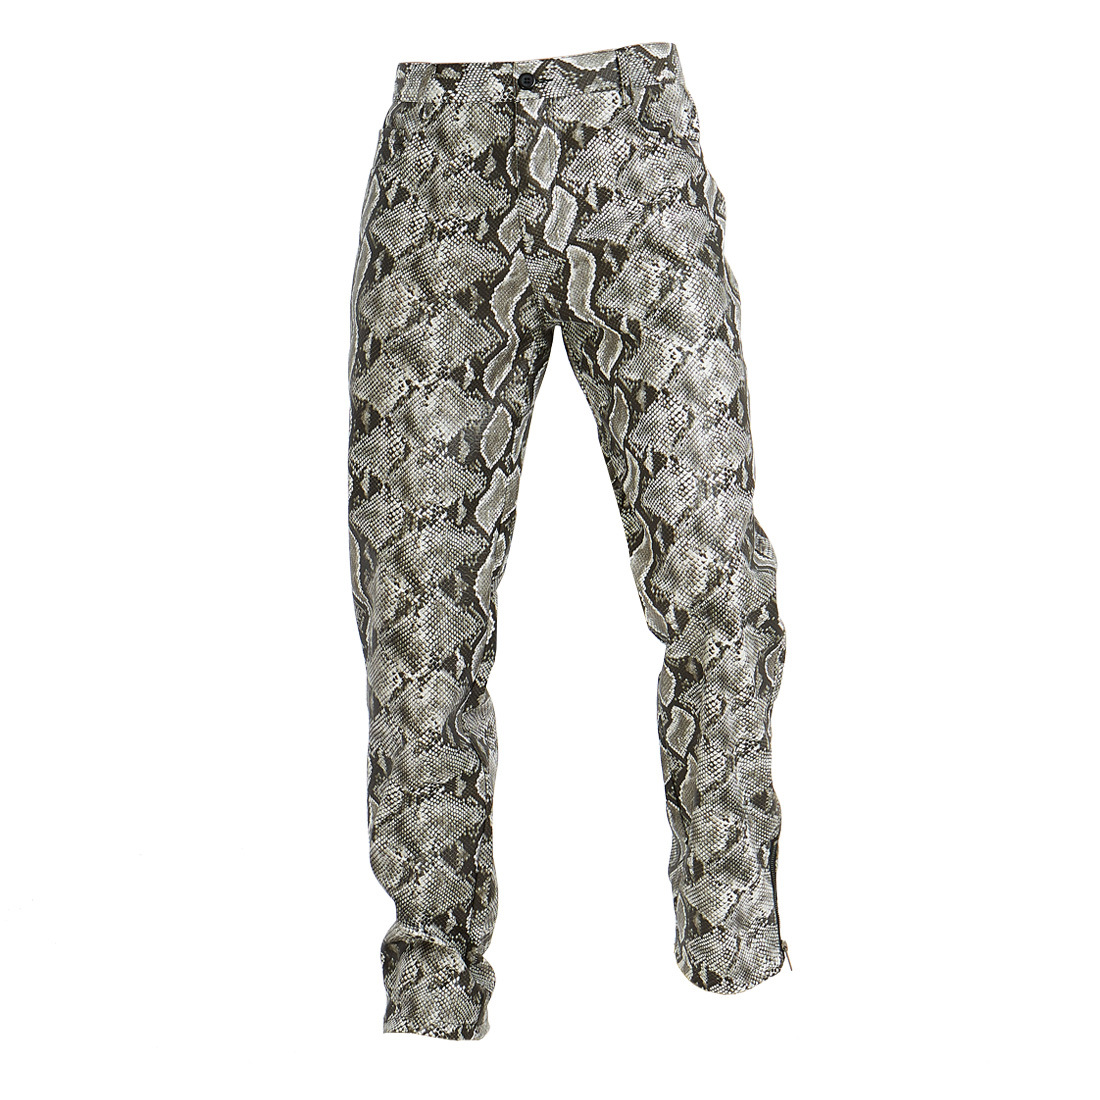 2019 New Style Ouma Casual Pants Snakeskin Print MEN'S PU Leather Pants Europe And America Fashion Man Slim Fit Pants Yk037